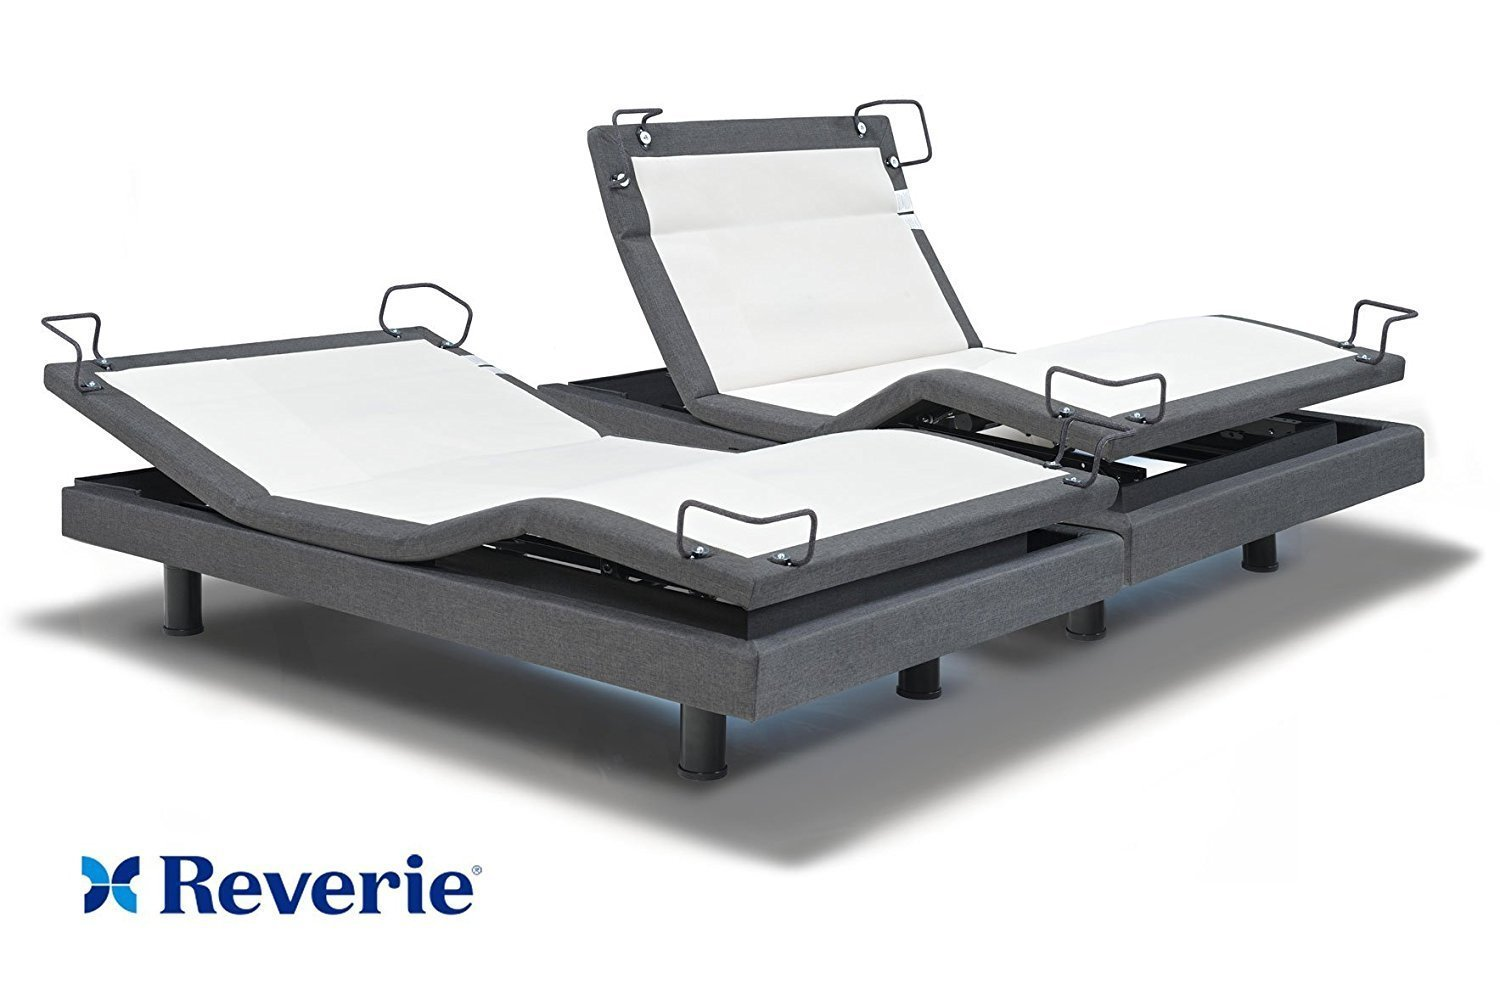 iDealBed Signature Reverie 8i Adjustable Bed Base, Wireless, Wall Hugger, High Definition Massage, Anti-Snore, USB Charge Ports, Night Light, Bluetooth, Split King